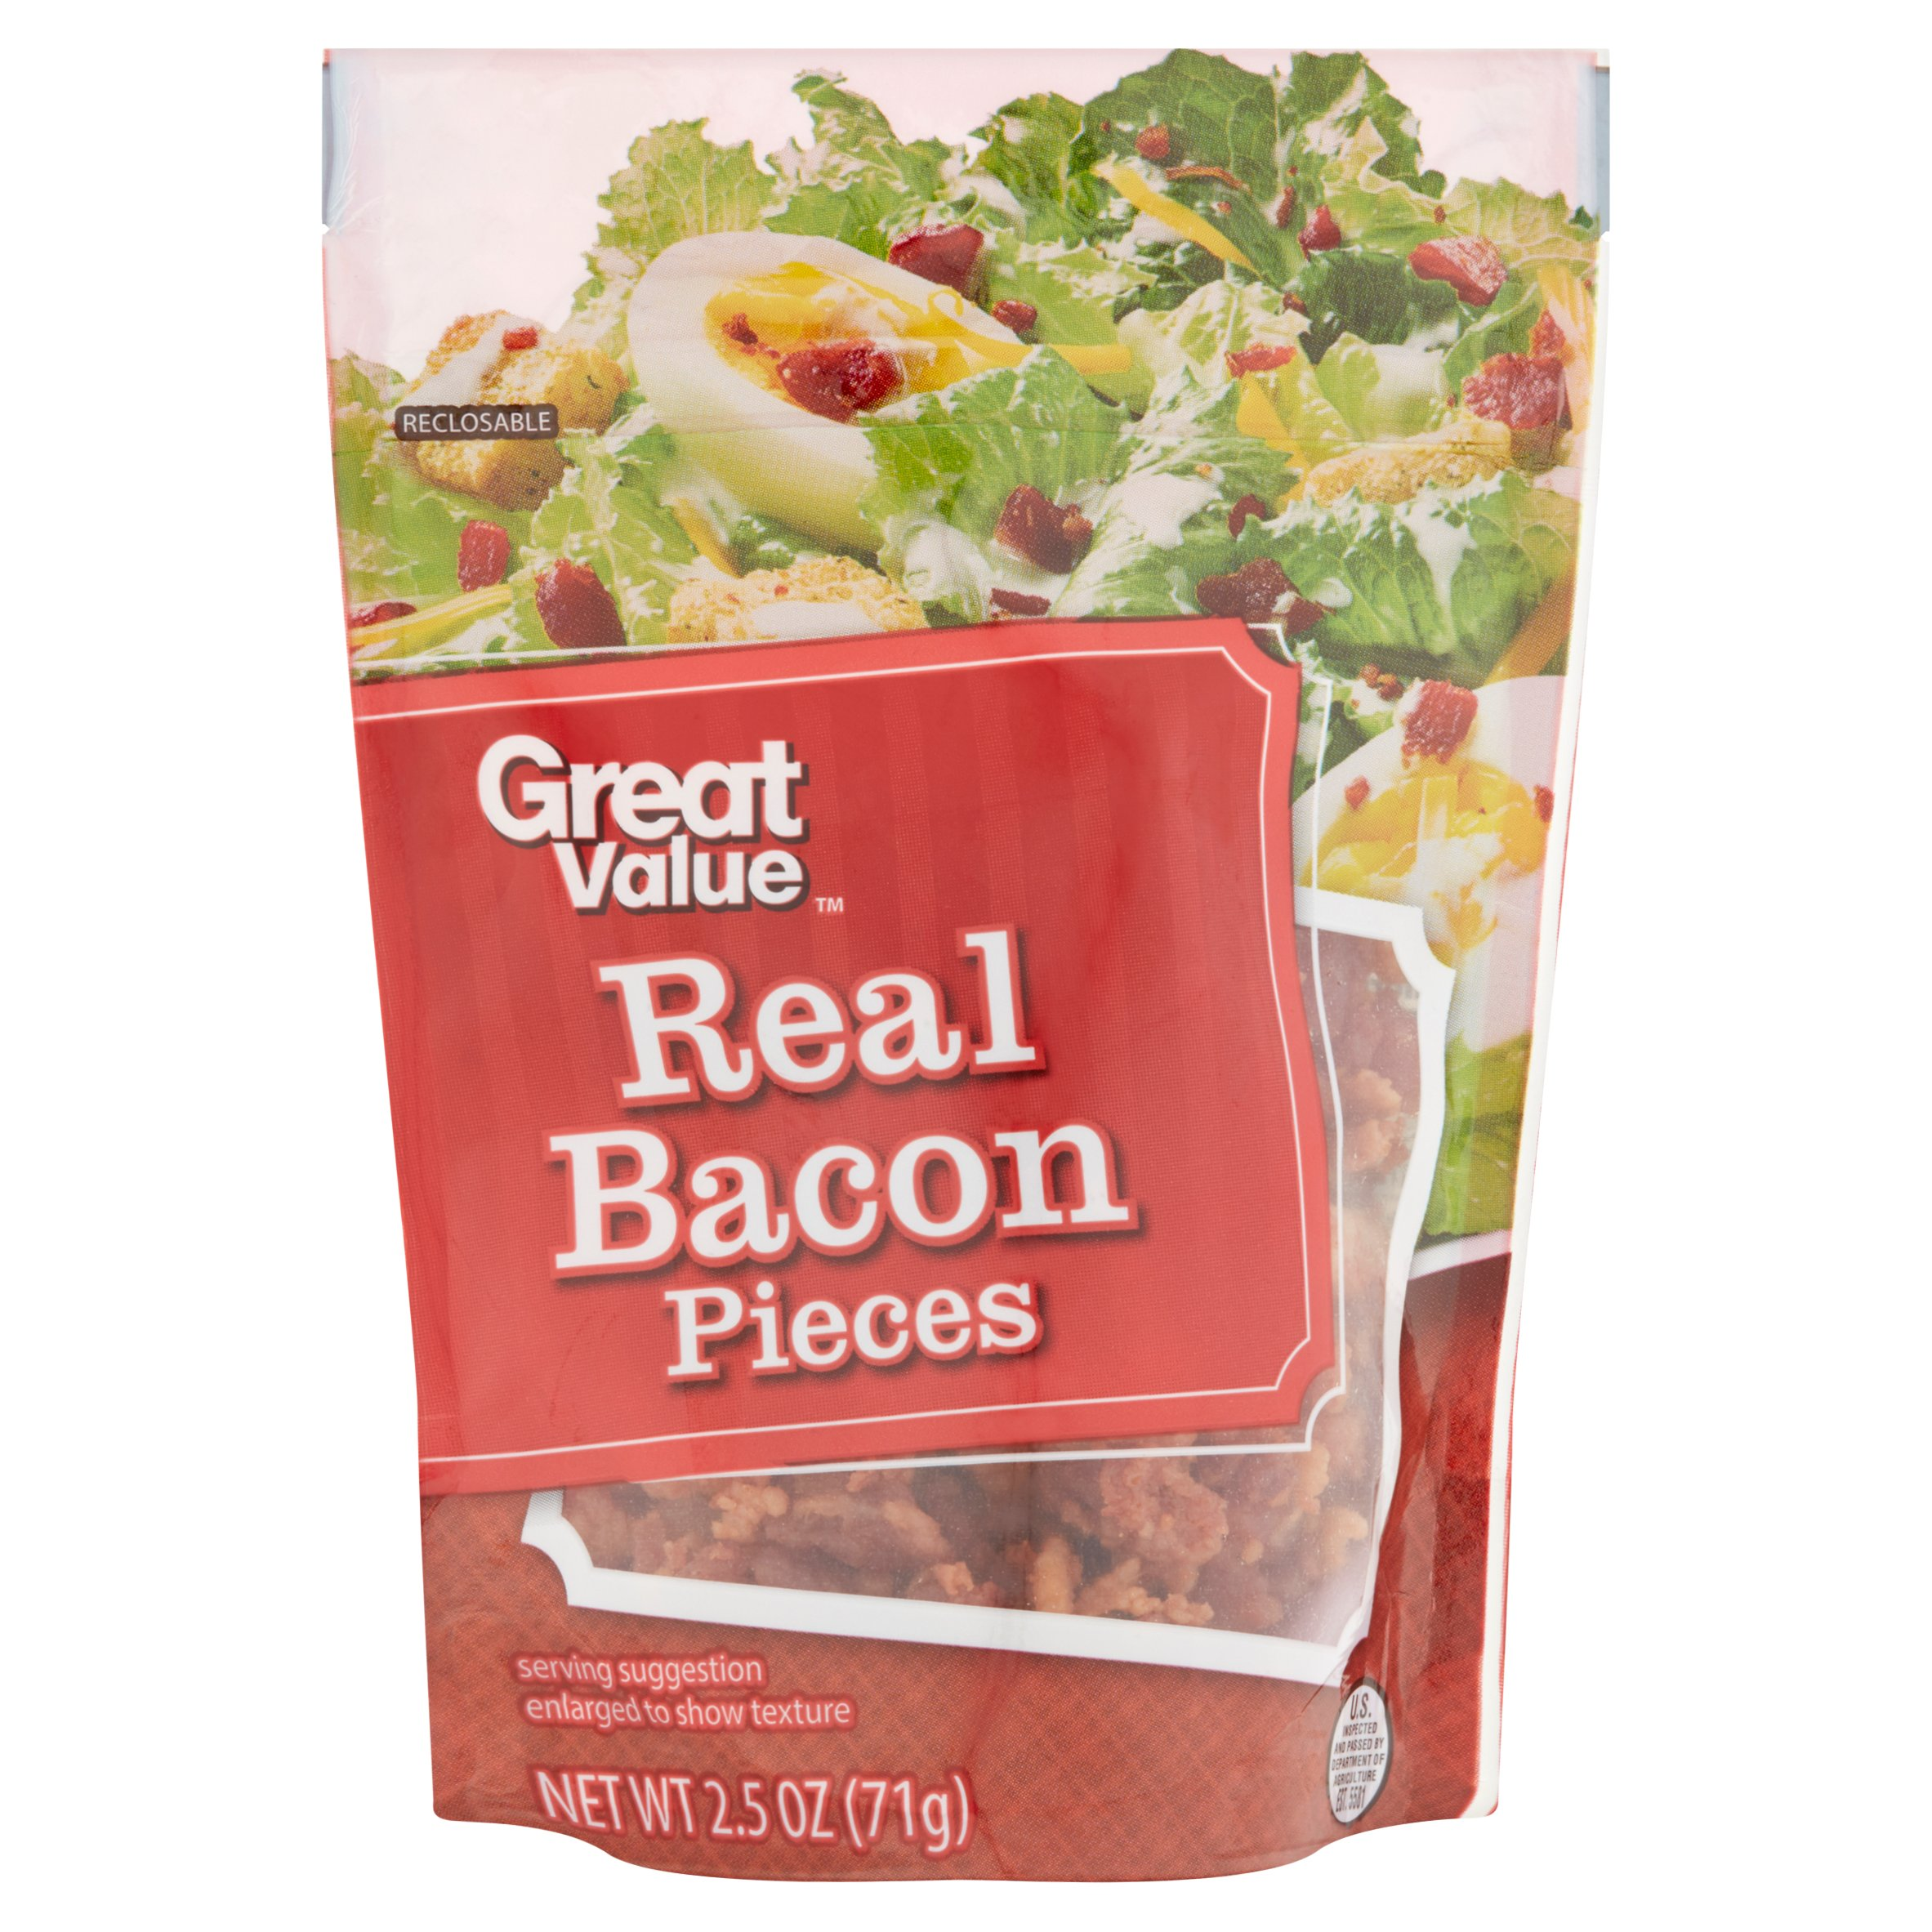 Great Value Real Bacon Pieces, 2.5 oz by Wal-Mart Stores, Inc.